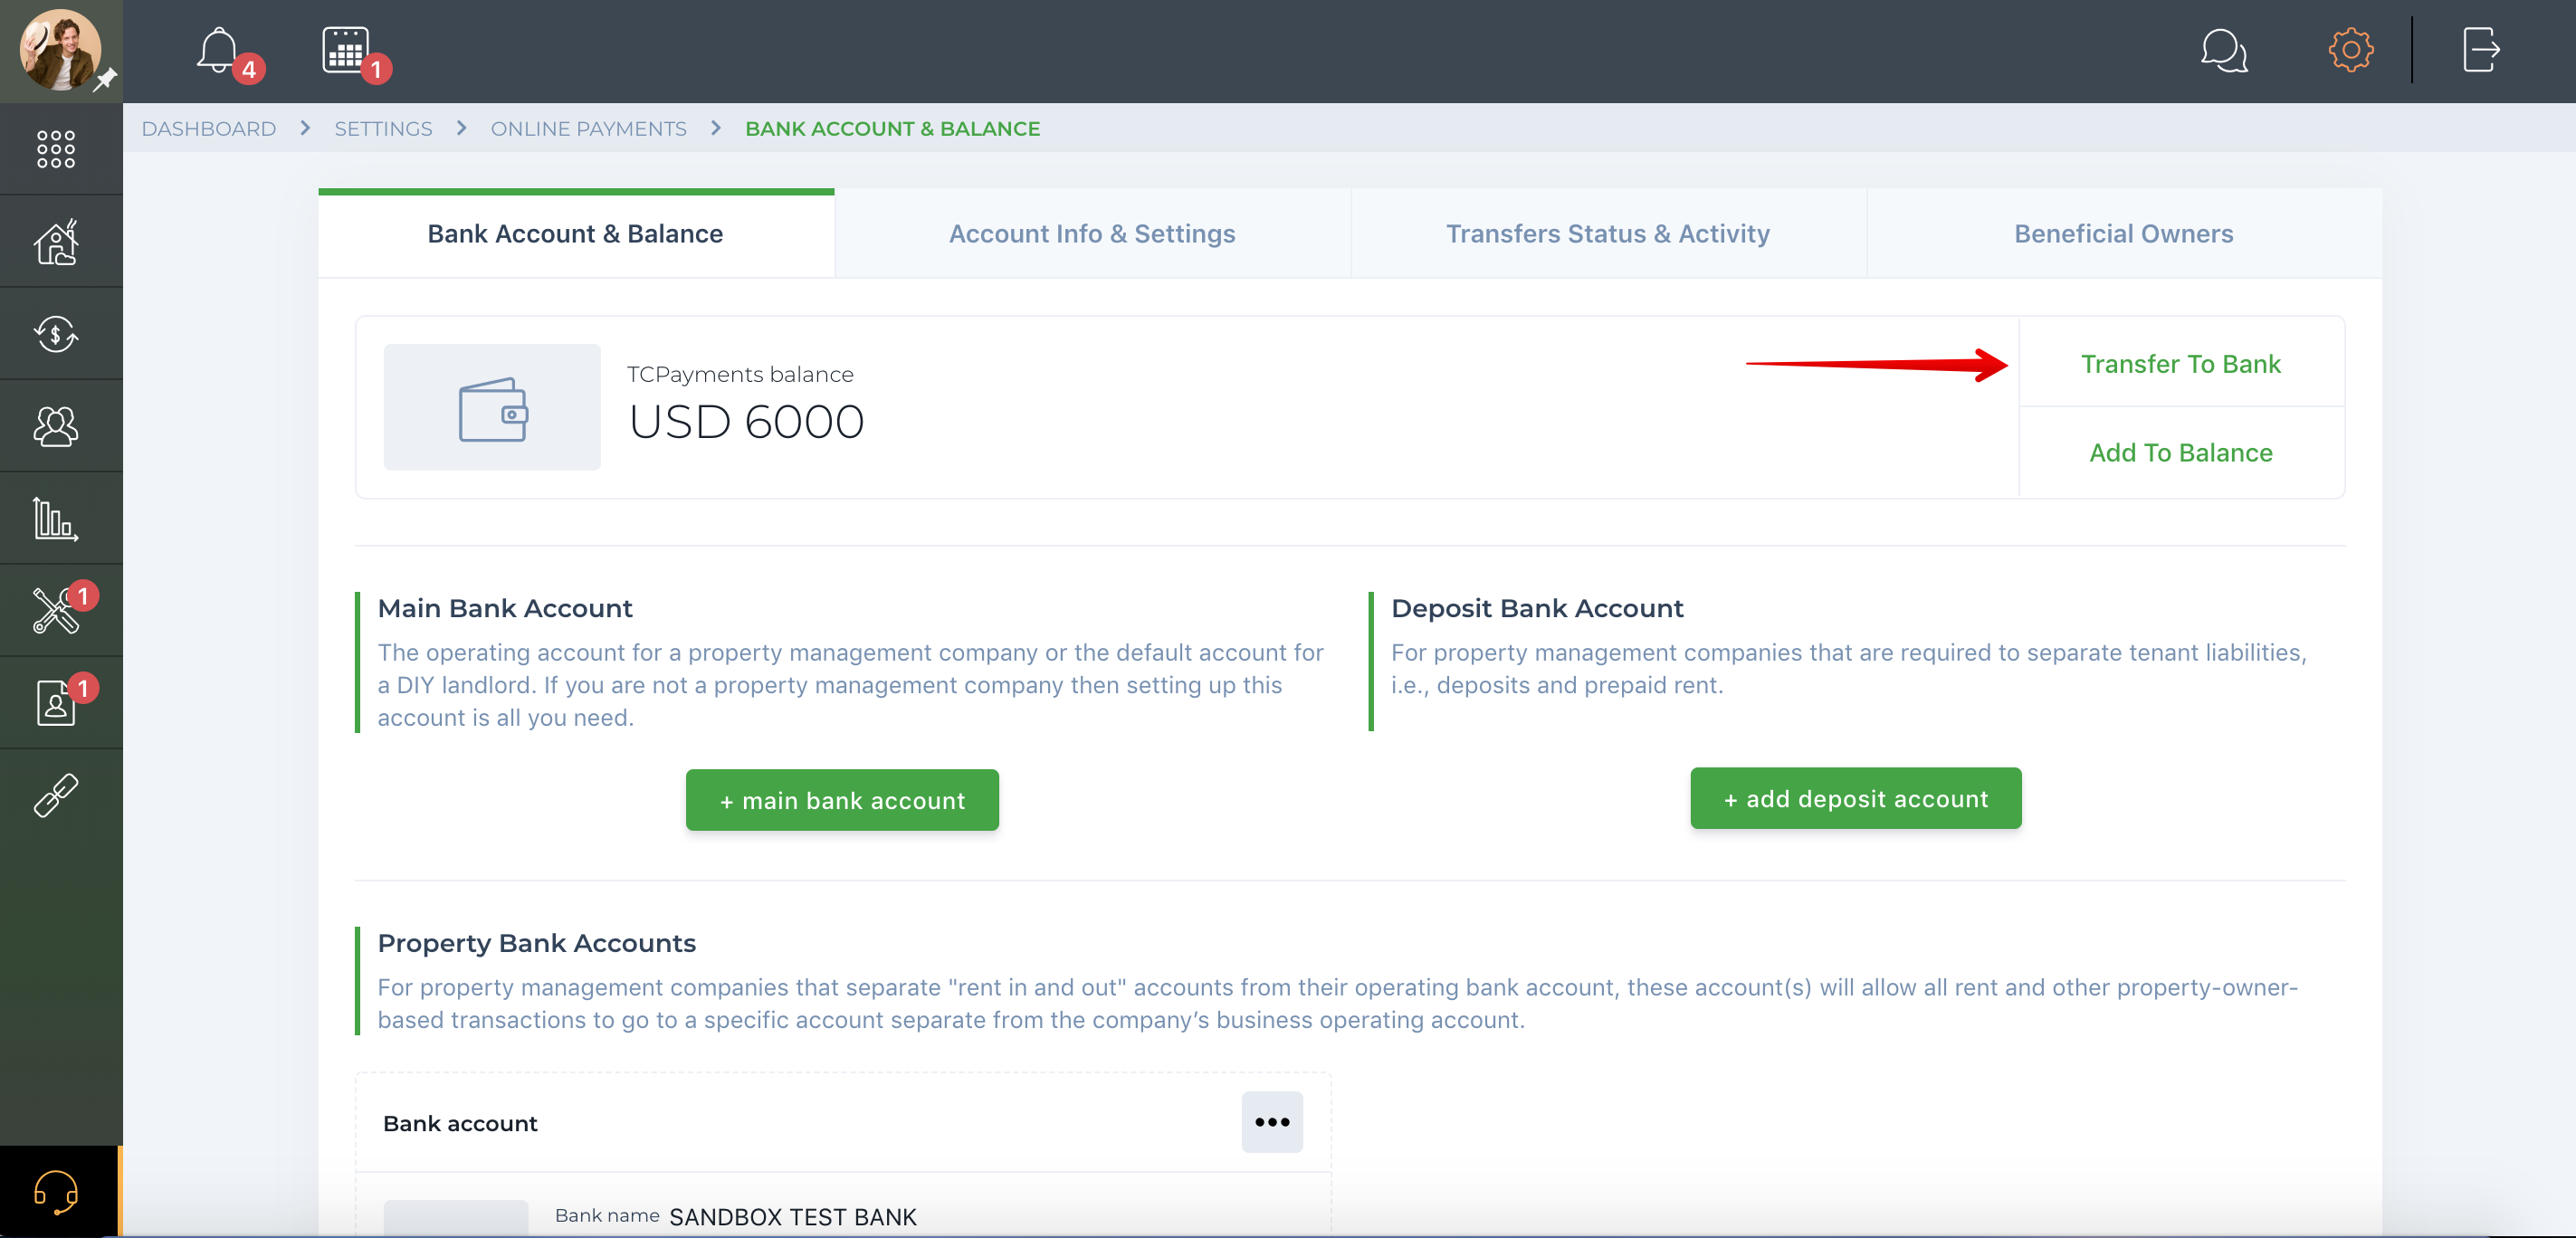 How to send money from TCBalance to bank account?